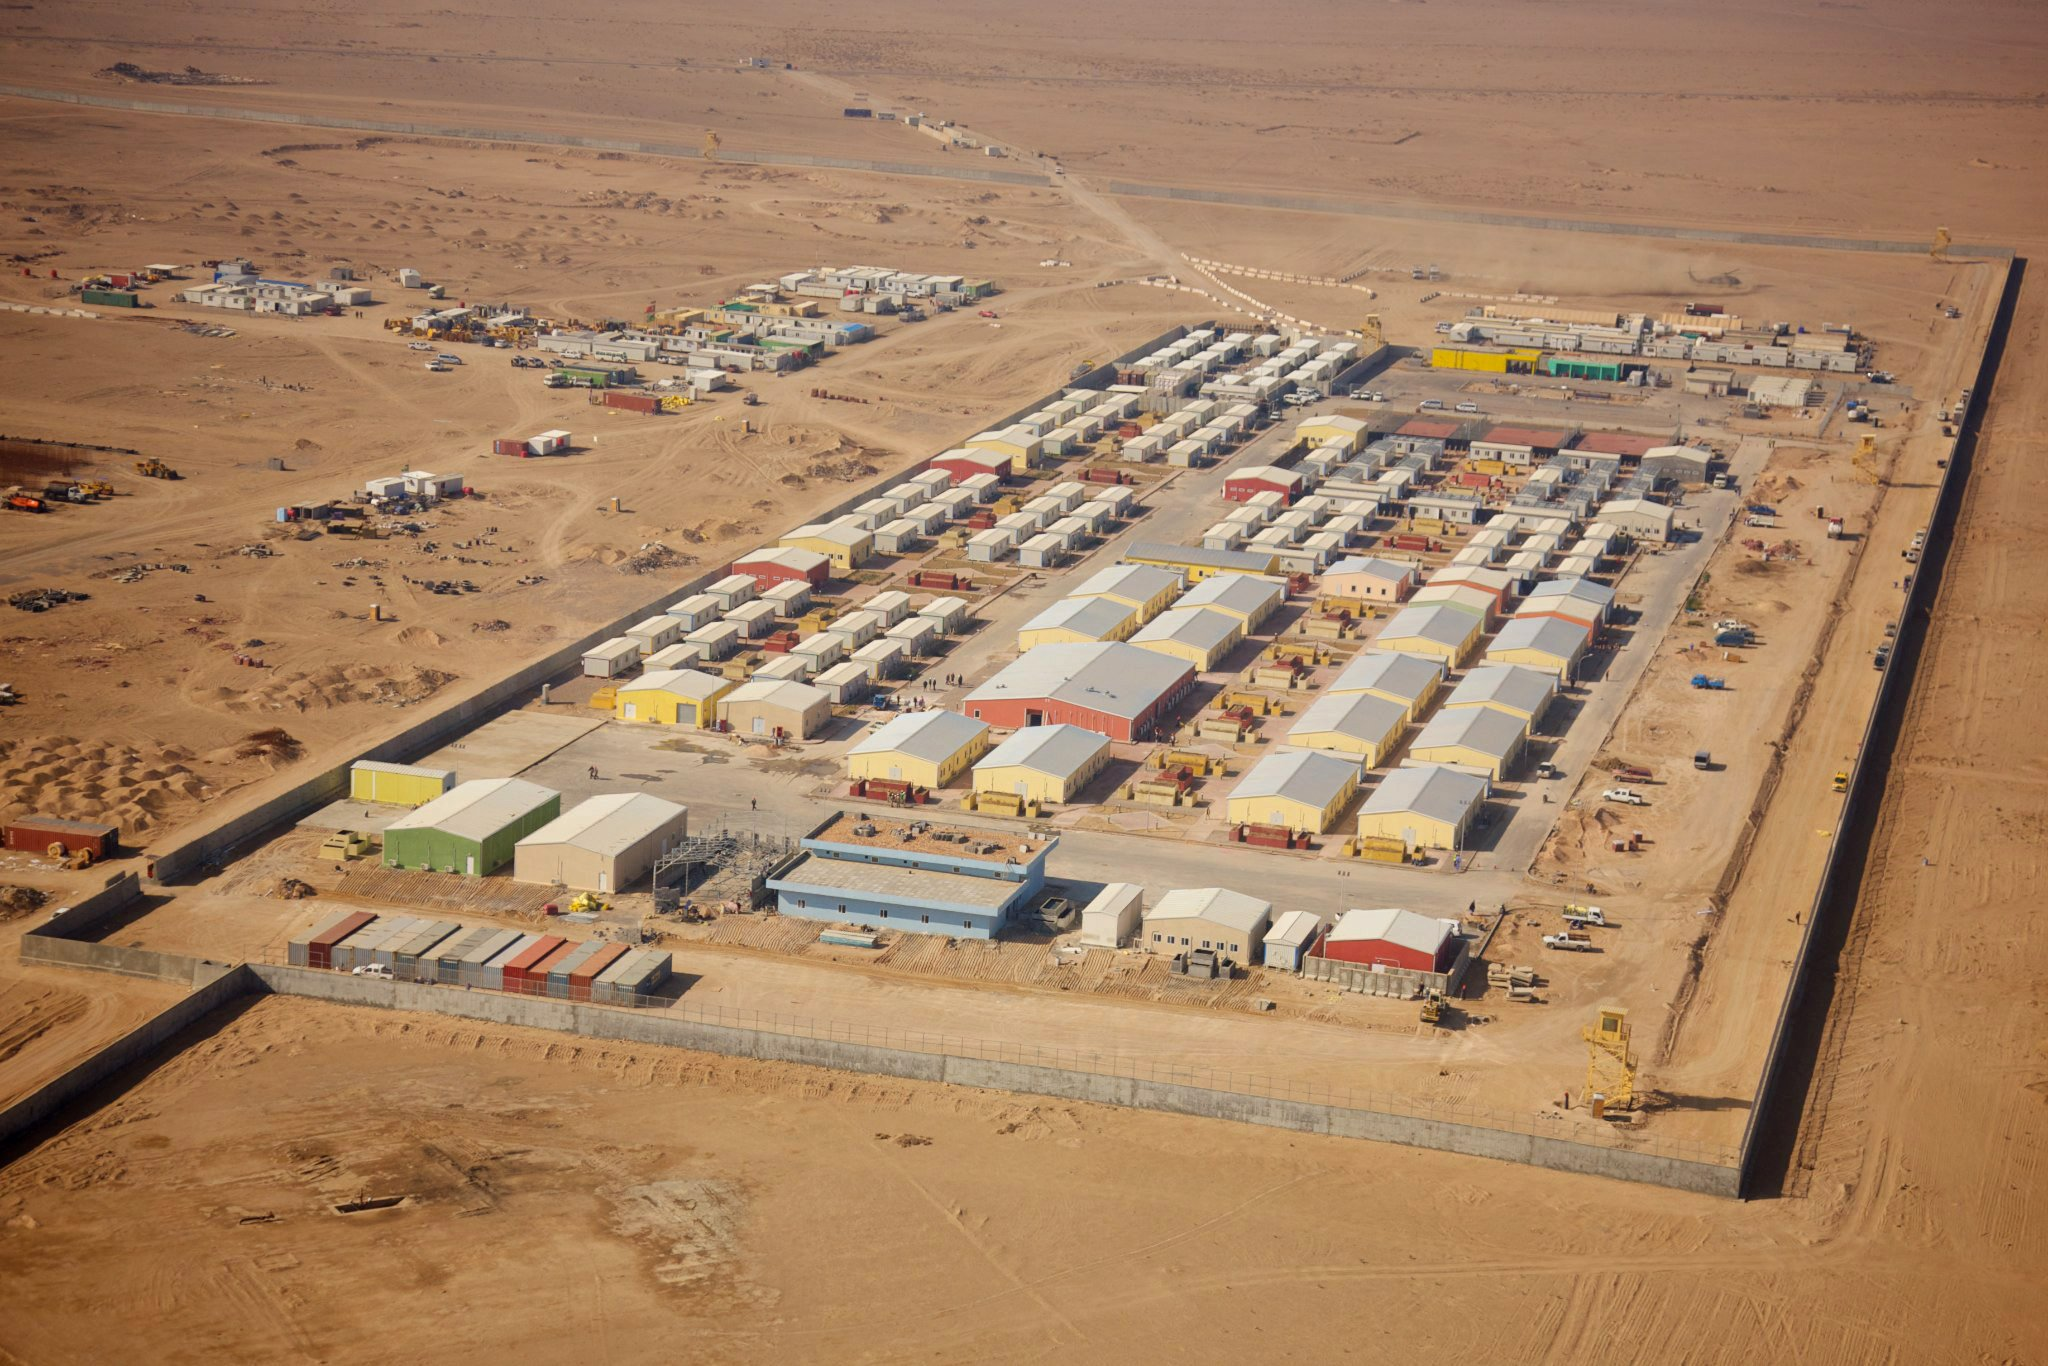 Aerial view of operating base in desert.